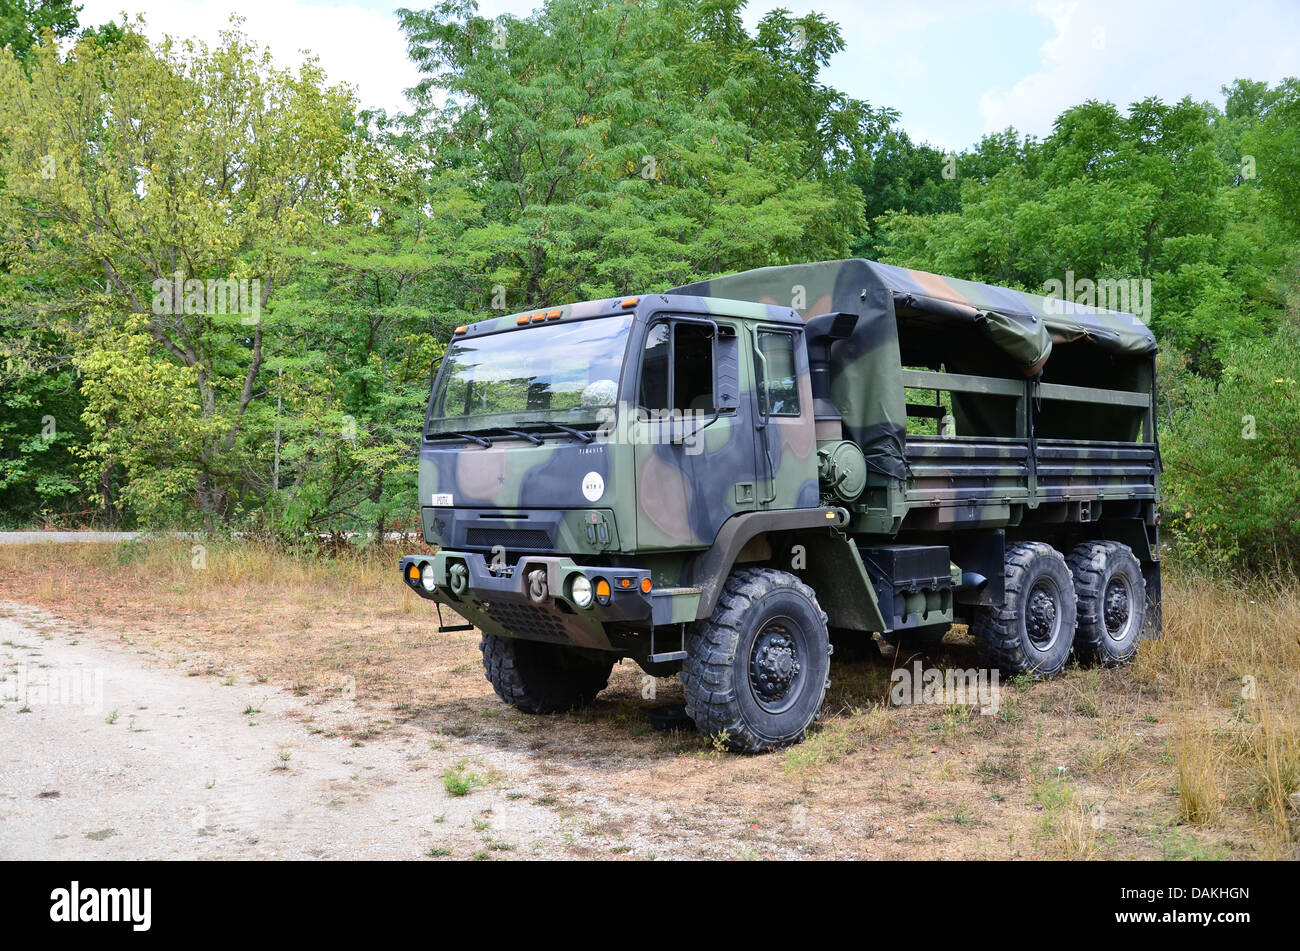 military personnel carrier 2 1 2 ton truck in camouflage stock photo royalty free image. Black Bedroom Furniture Sets. Home Design Ideas